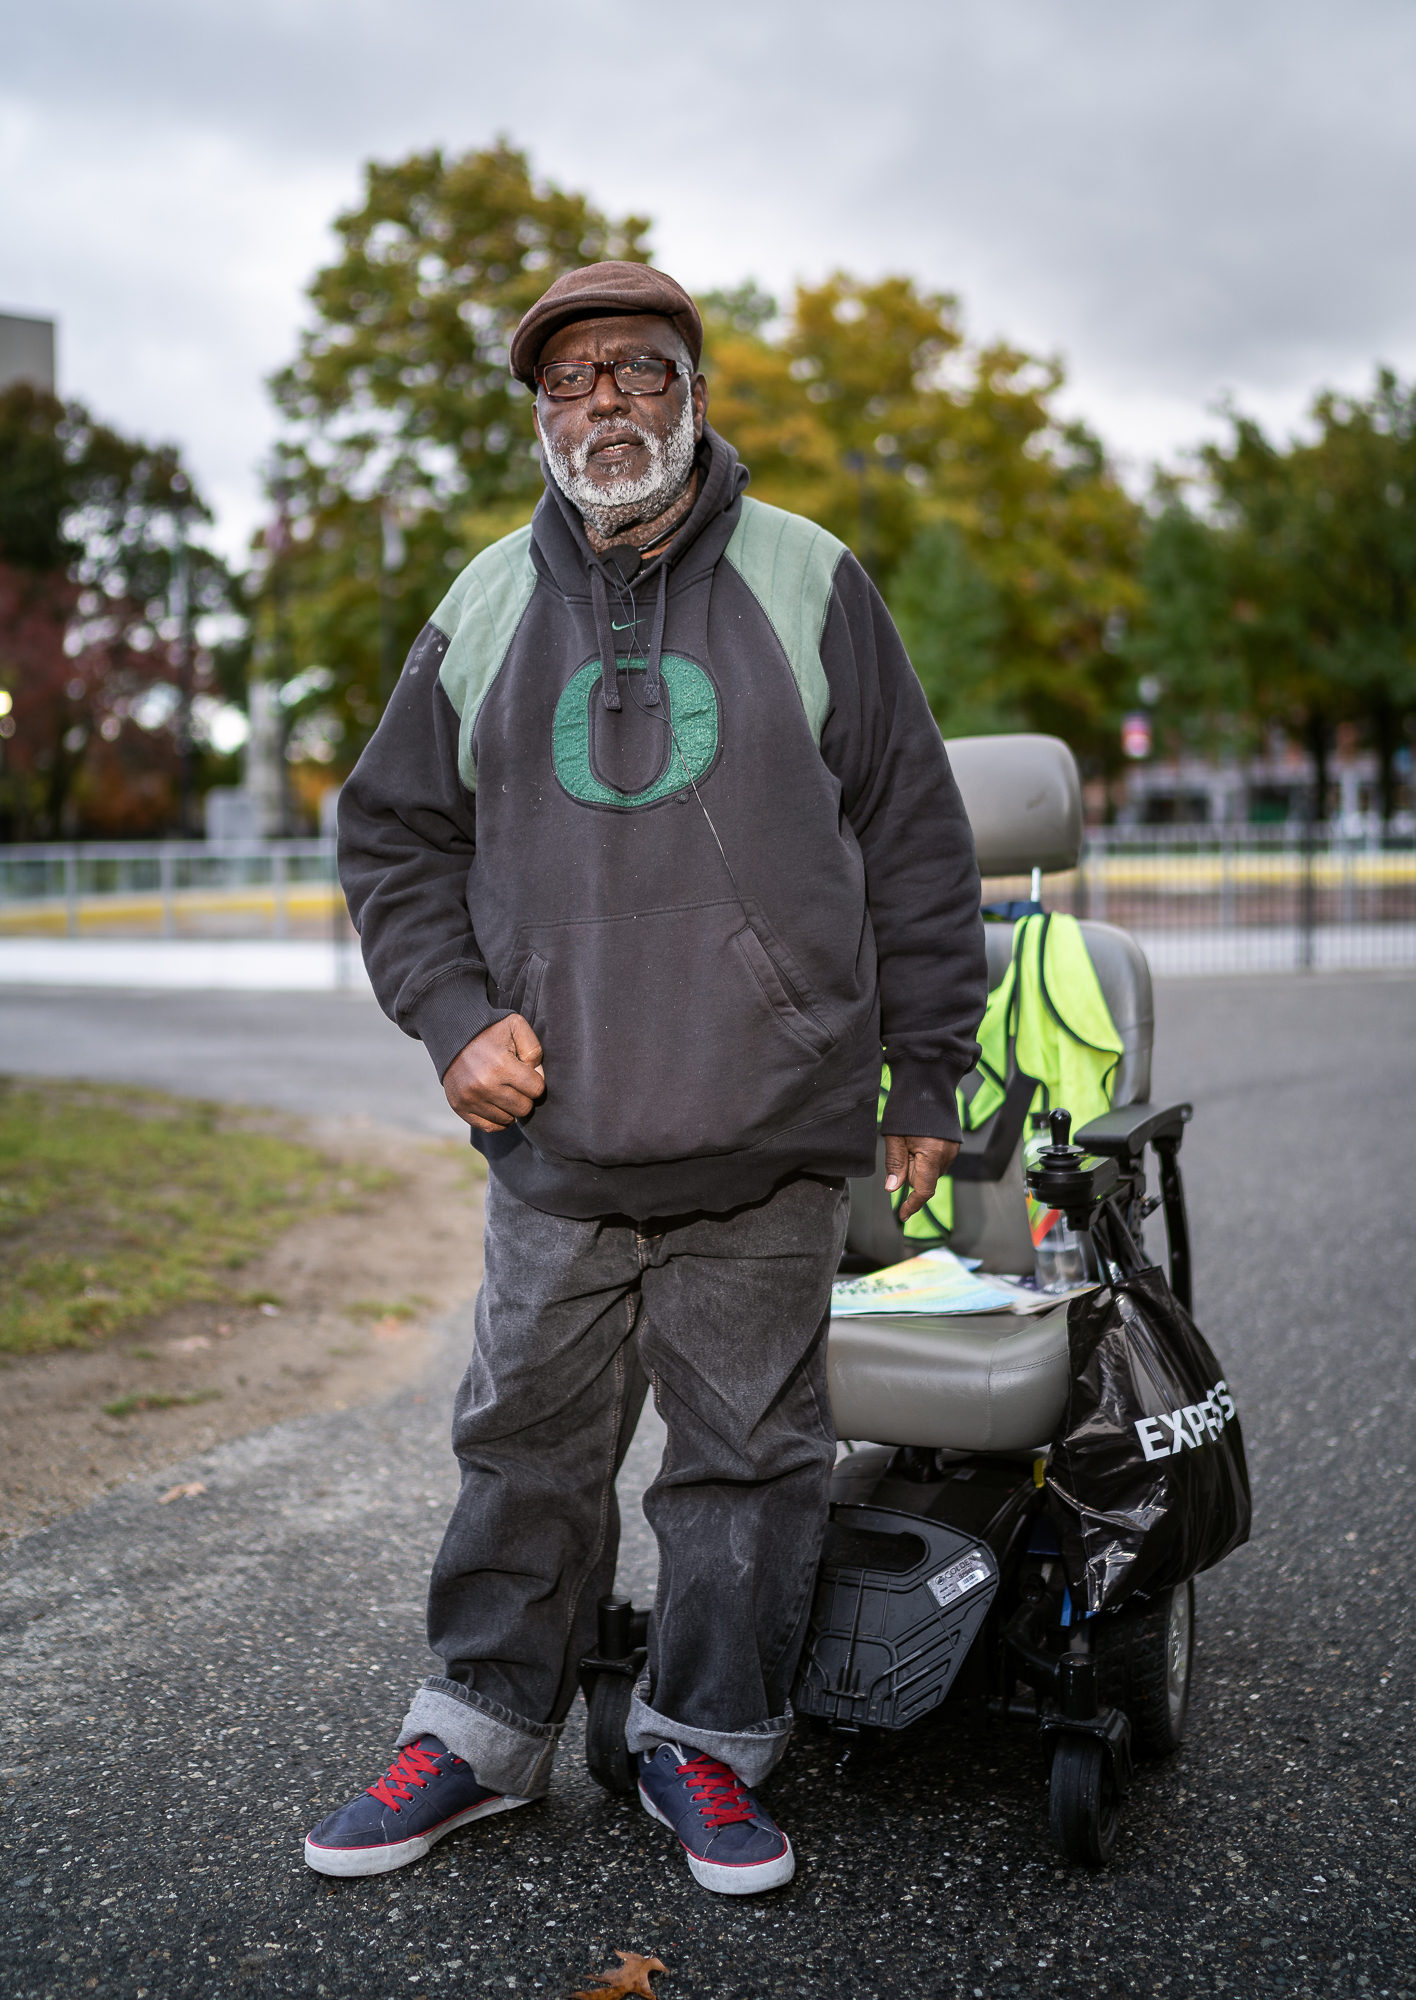 David, Worcester Common, October, 2018.